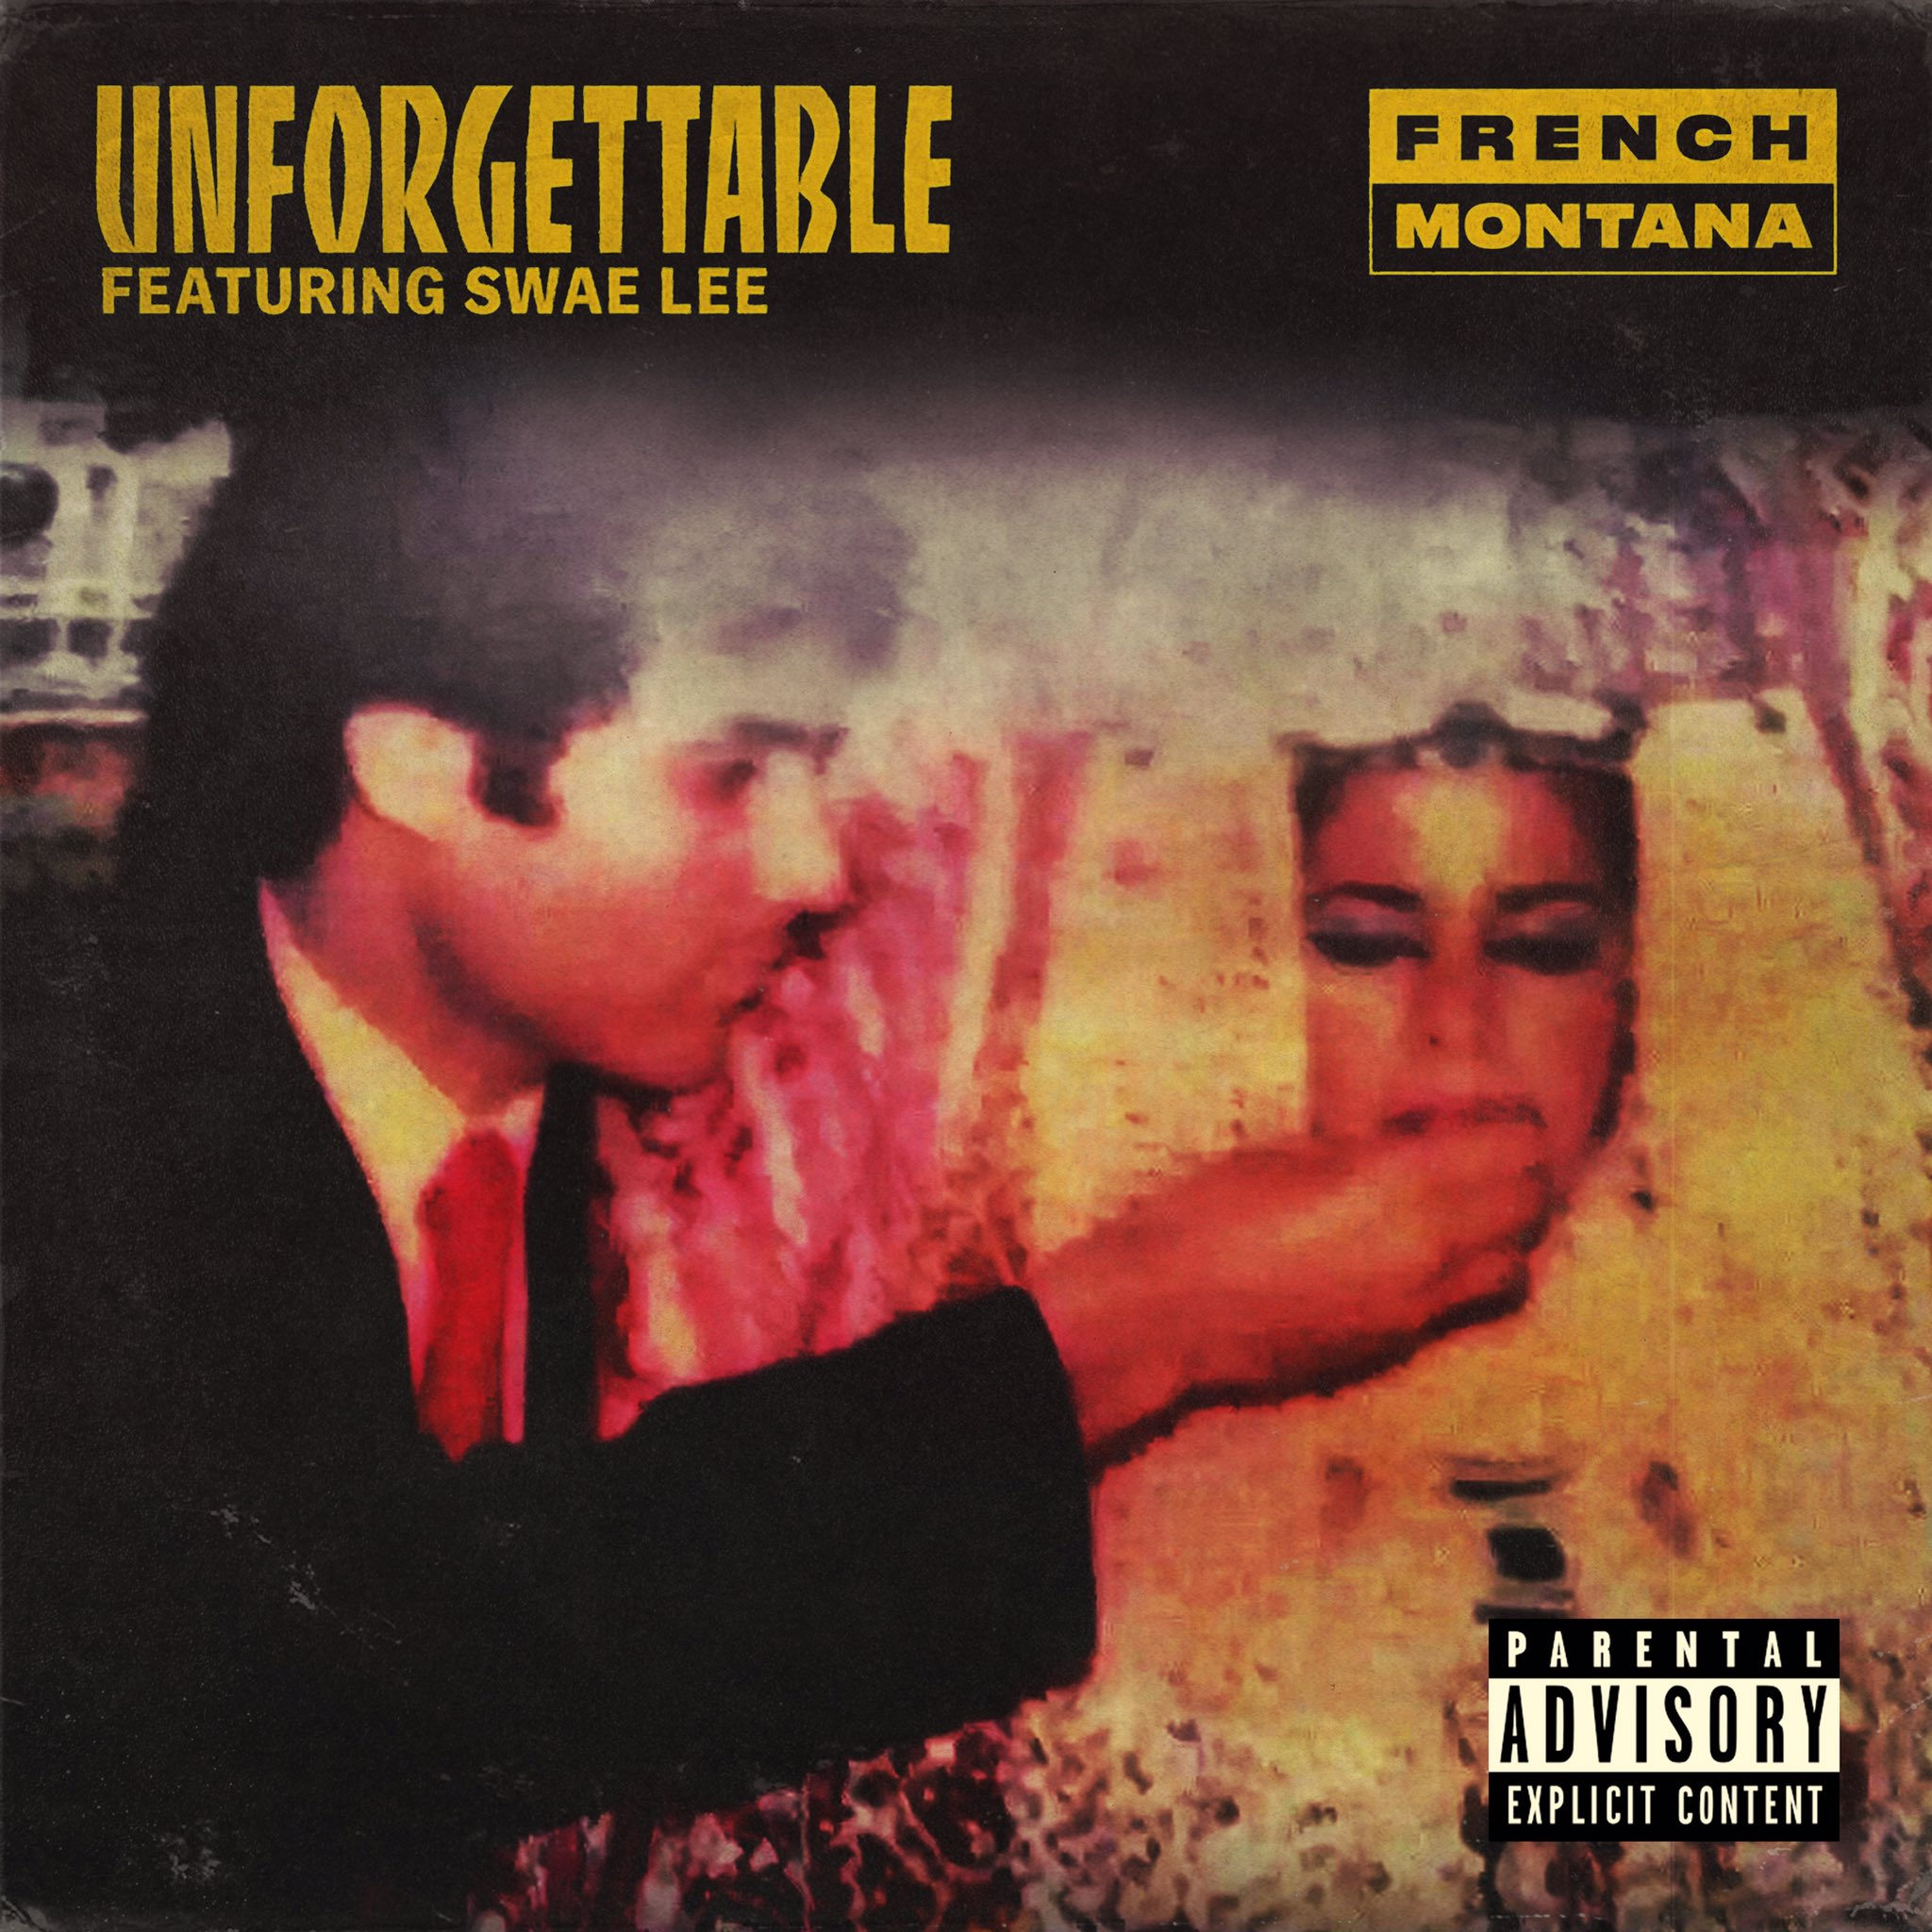 Get ready for two new @FrencHMonTanA tracks dropping tonight at midnight‼ #Unforgettable #NoPressure ���� https://t.co/MxJNc7q0pN